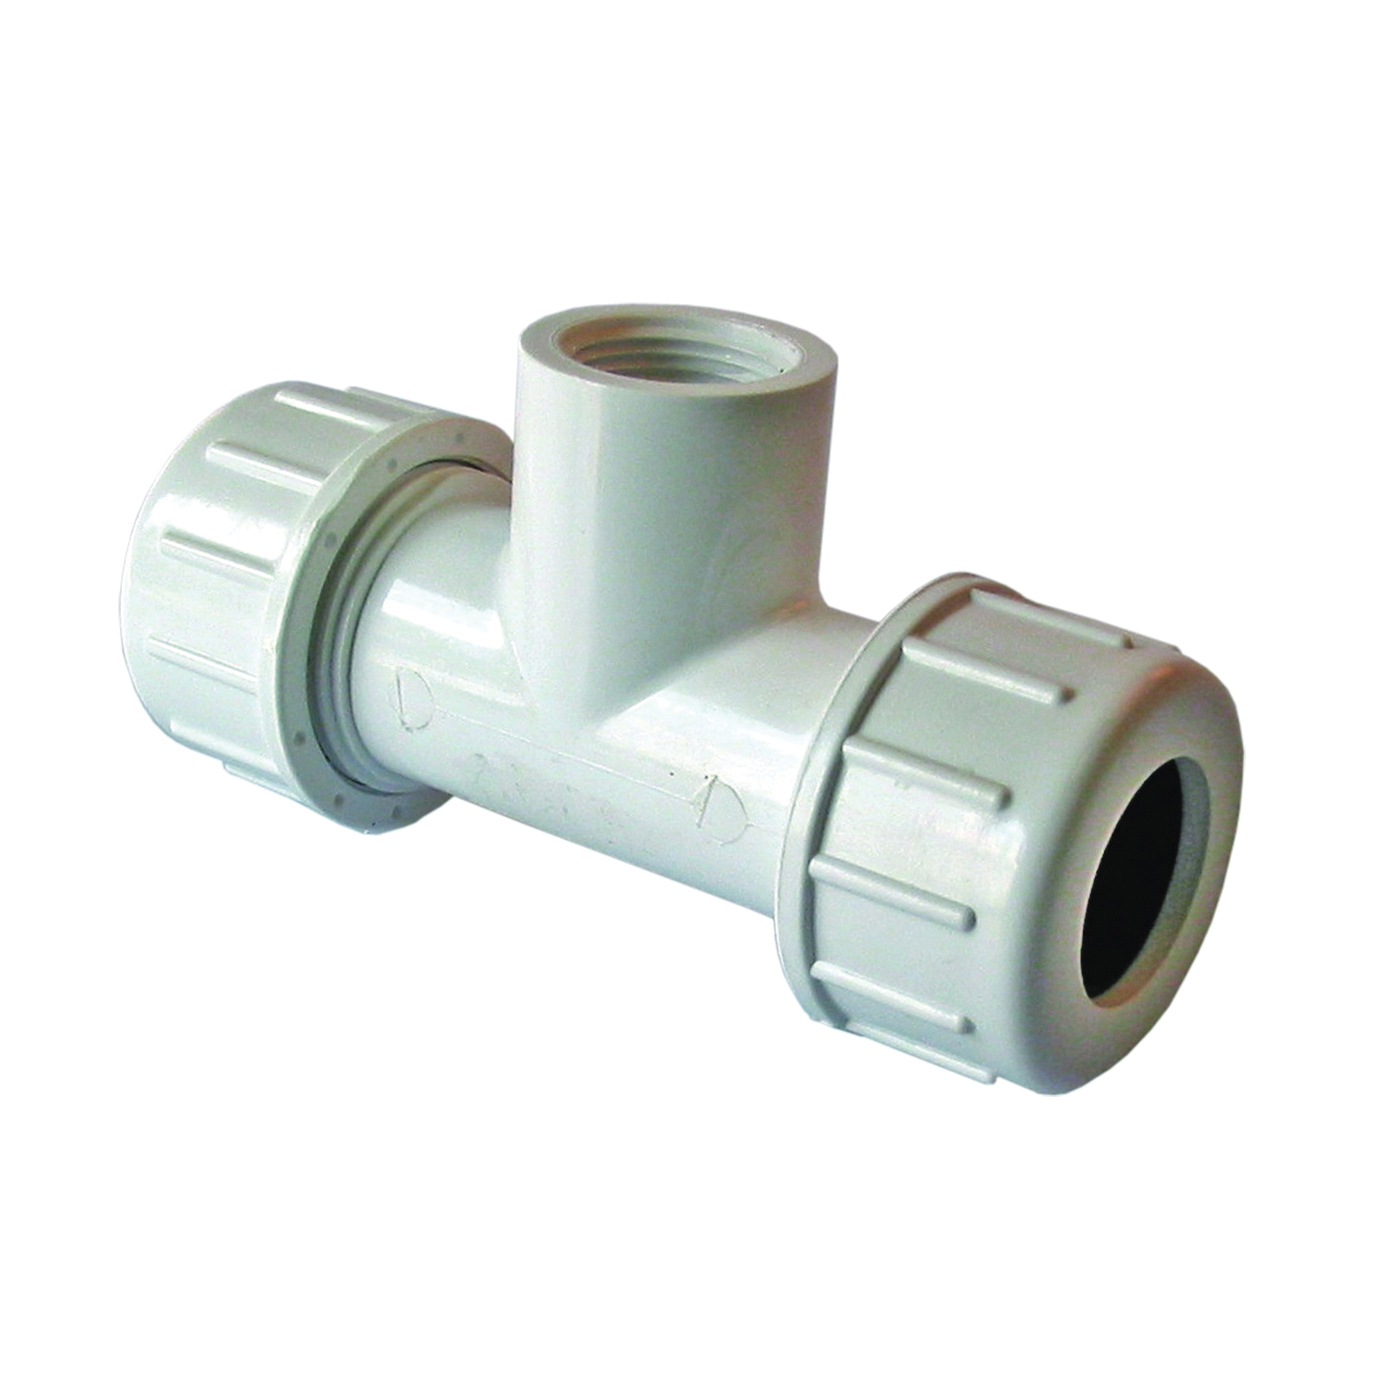 Picture of AMERICAN VALVE P230 1/2 Pipe Tee, 1/2 in Run, Compression x Compression x Female NPT Run Connection, 1/2 in Branch